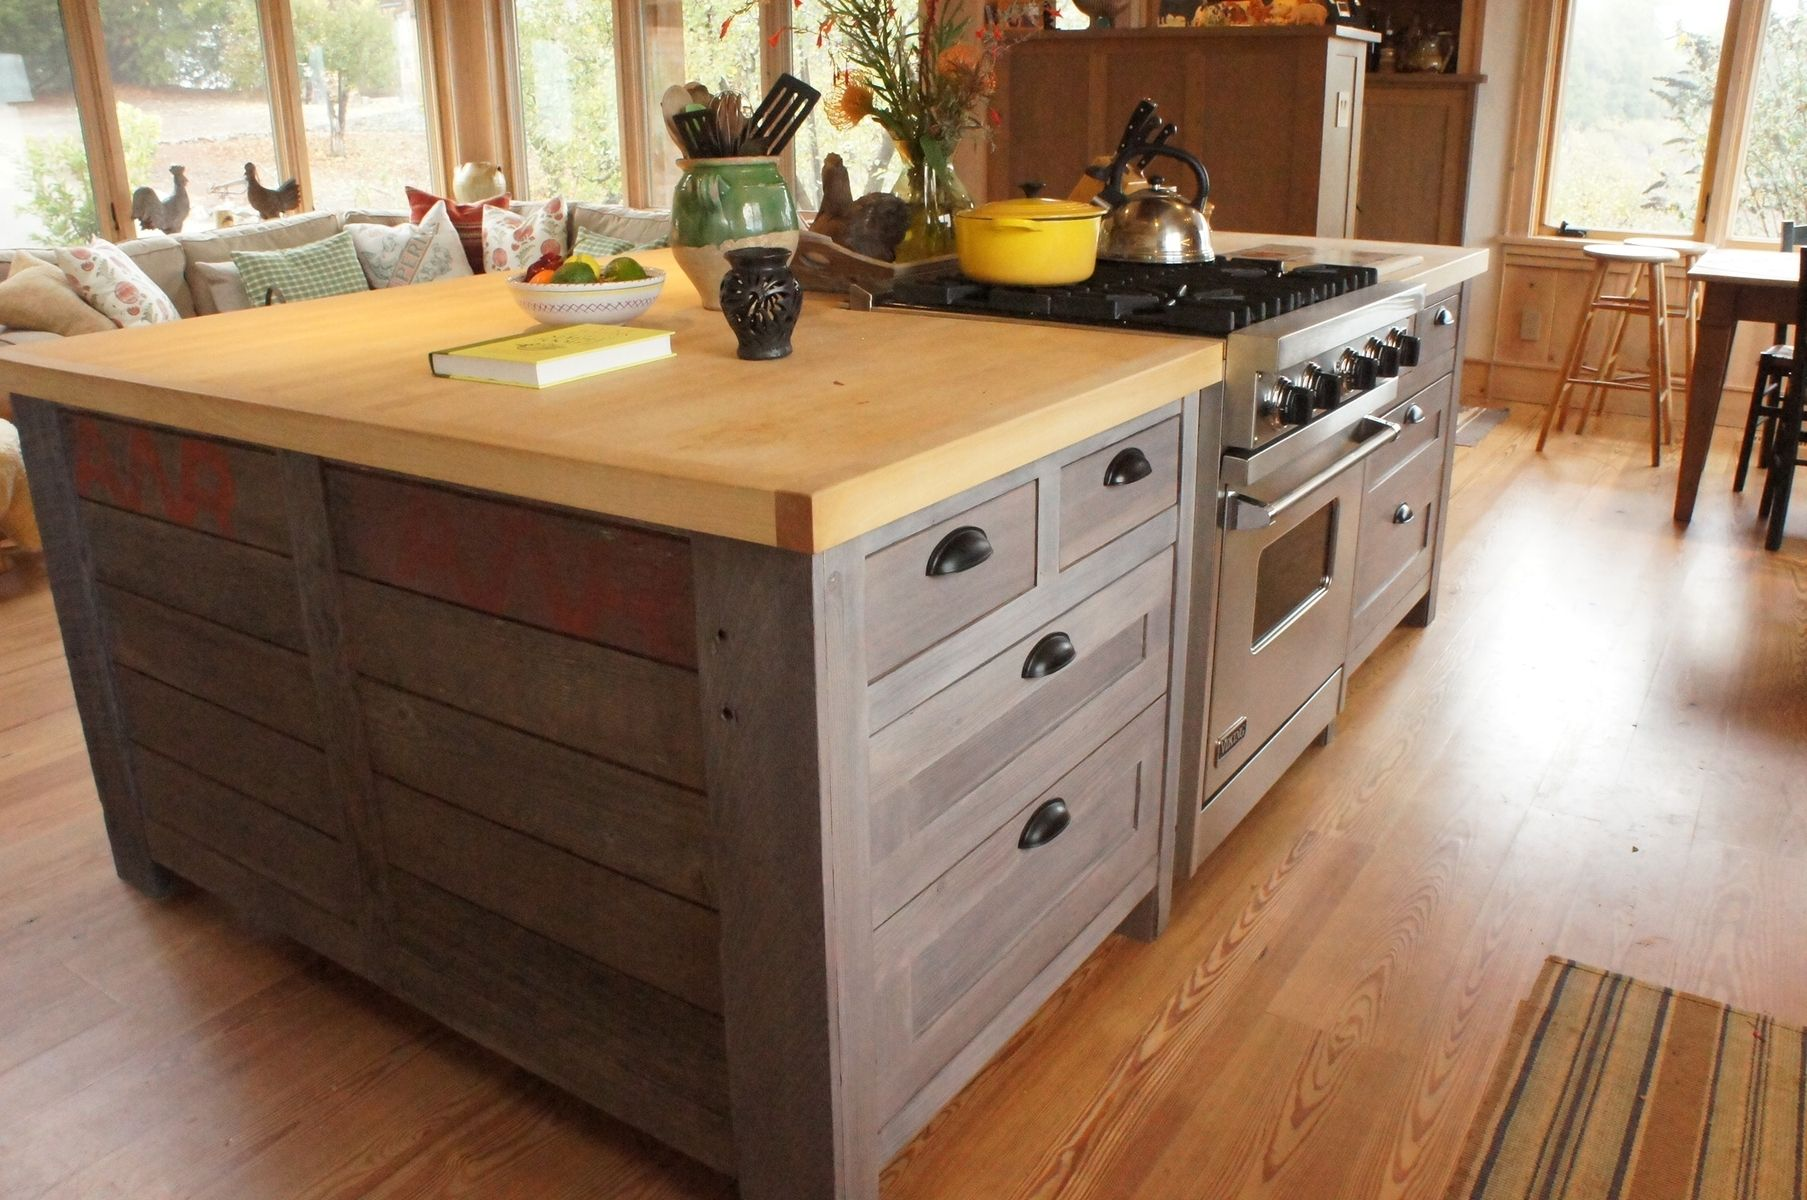 Hand crafted rustic kitchen island by atlas stringed for Making a kitchen island from cabinets